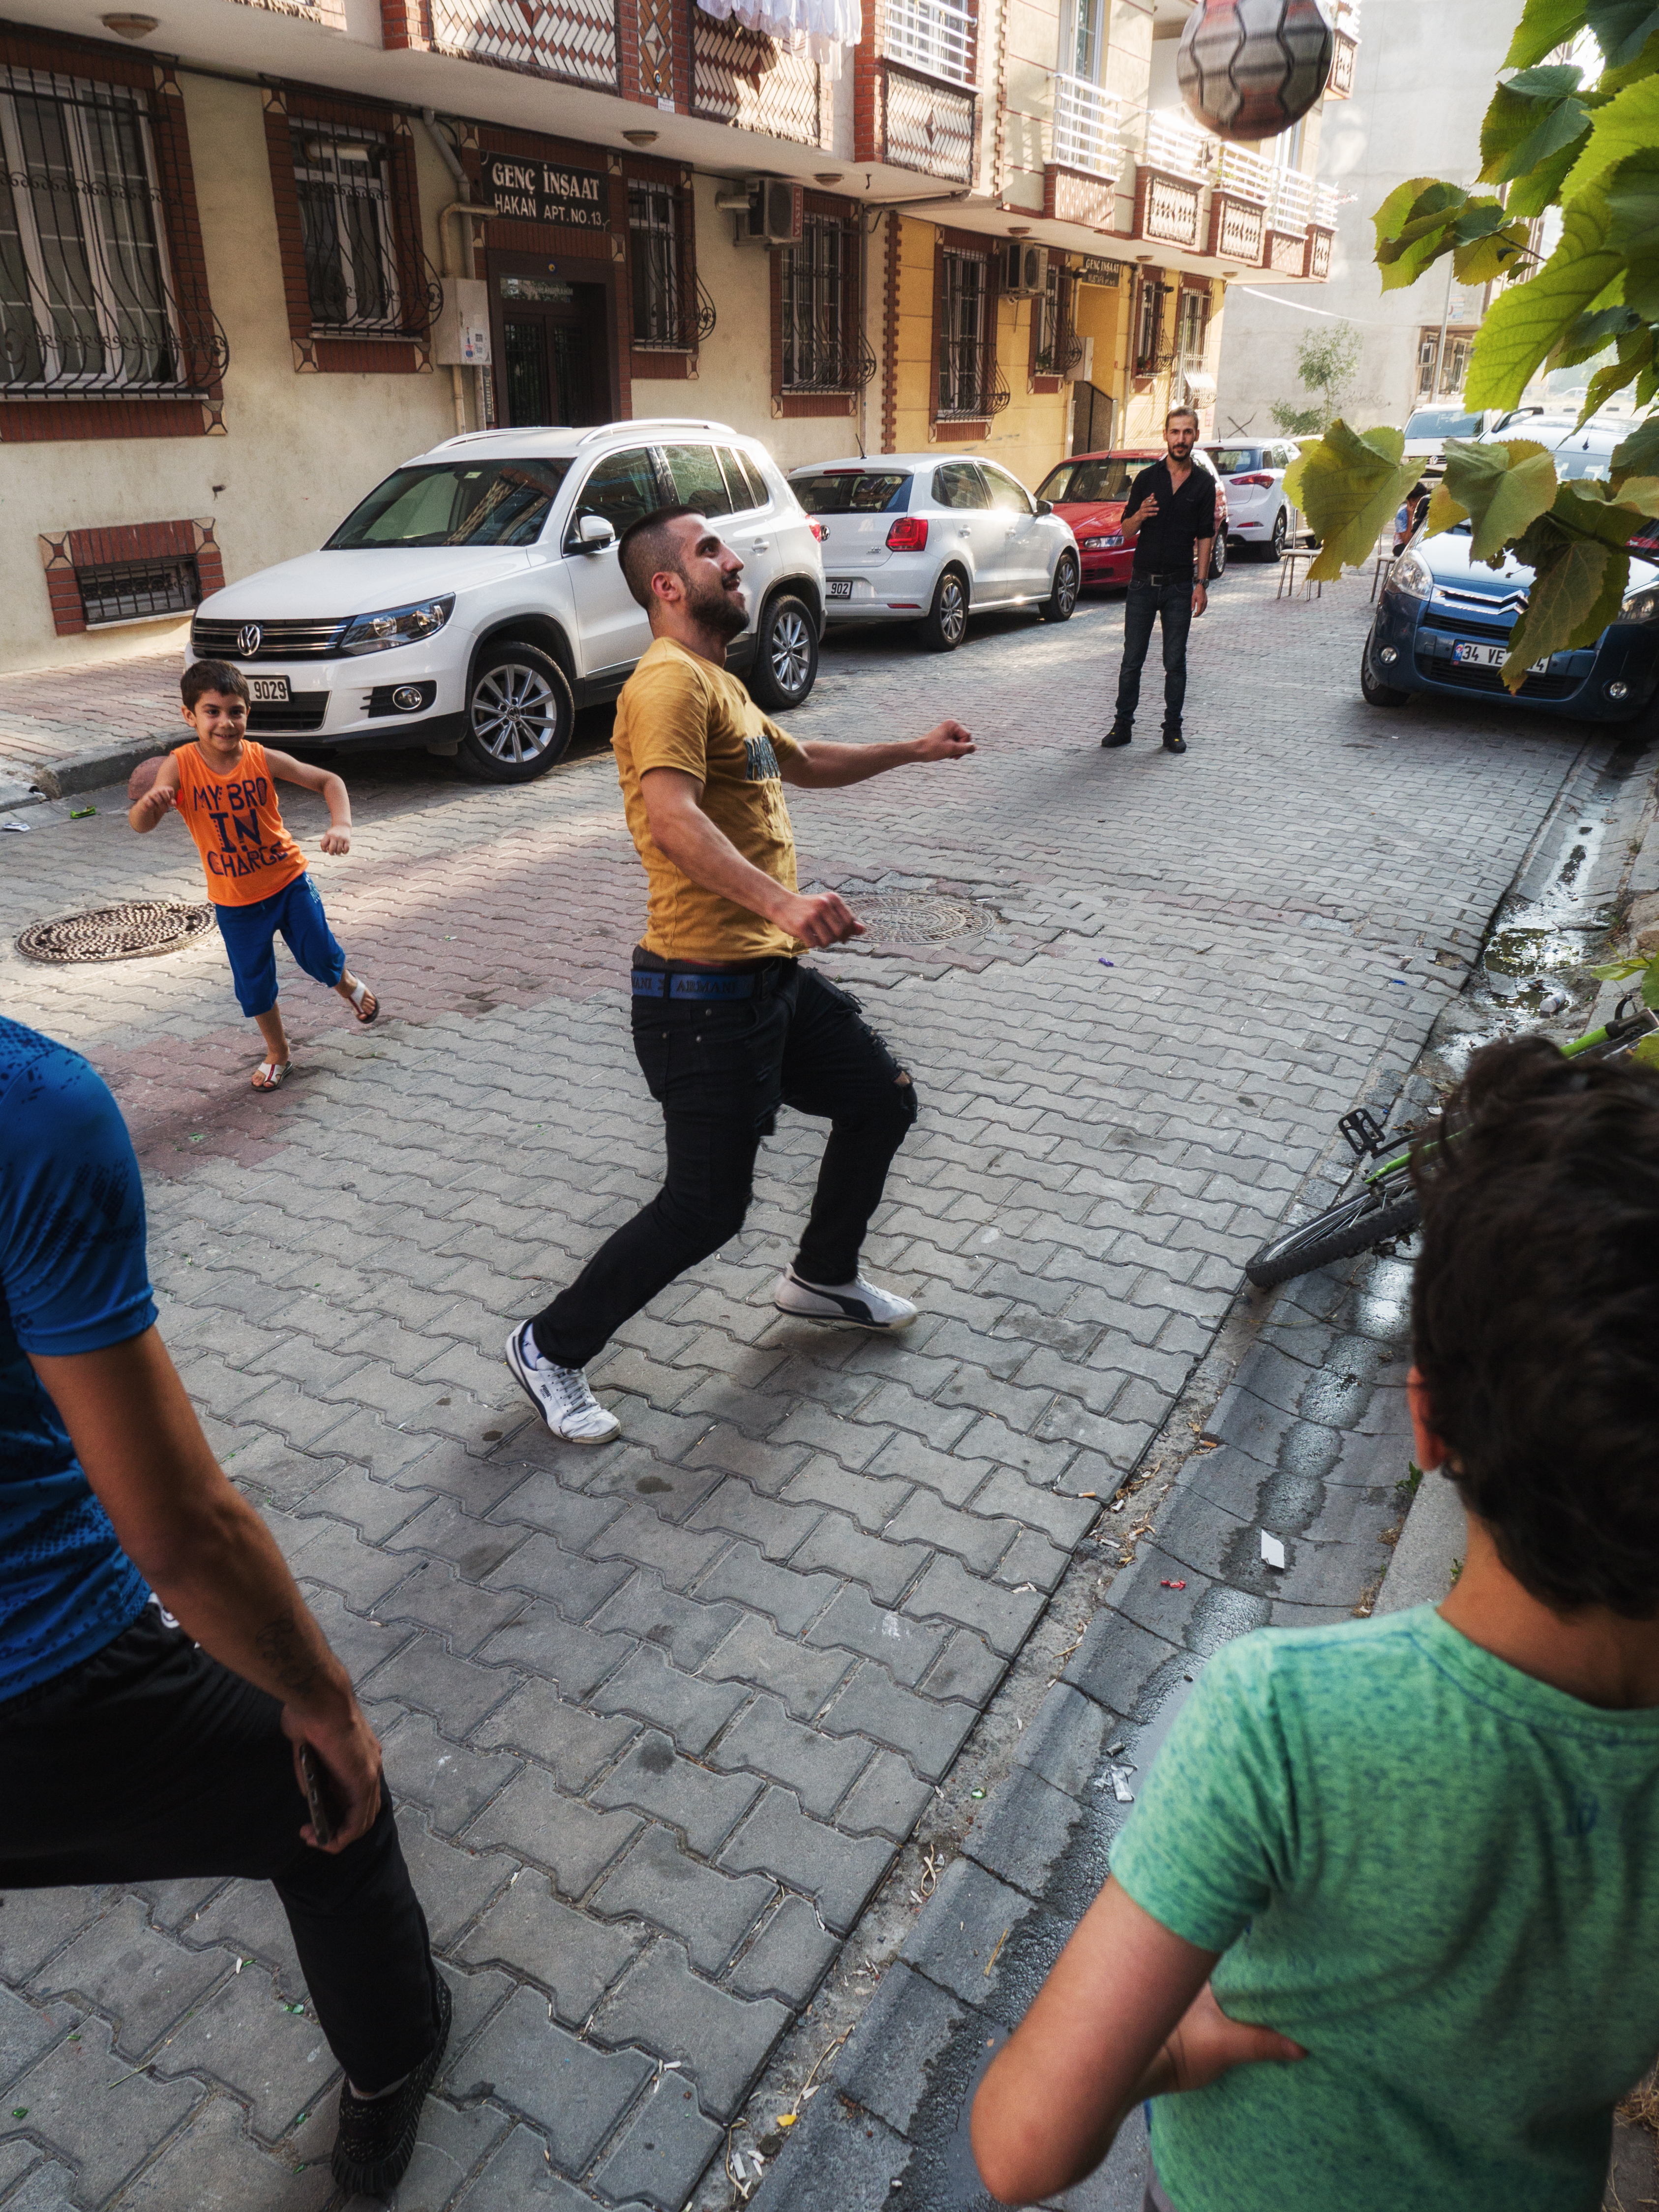 soccer in Mehmet's neighborhood